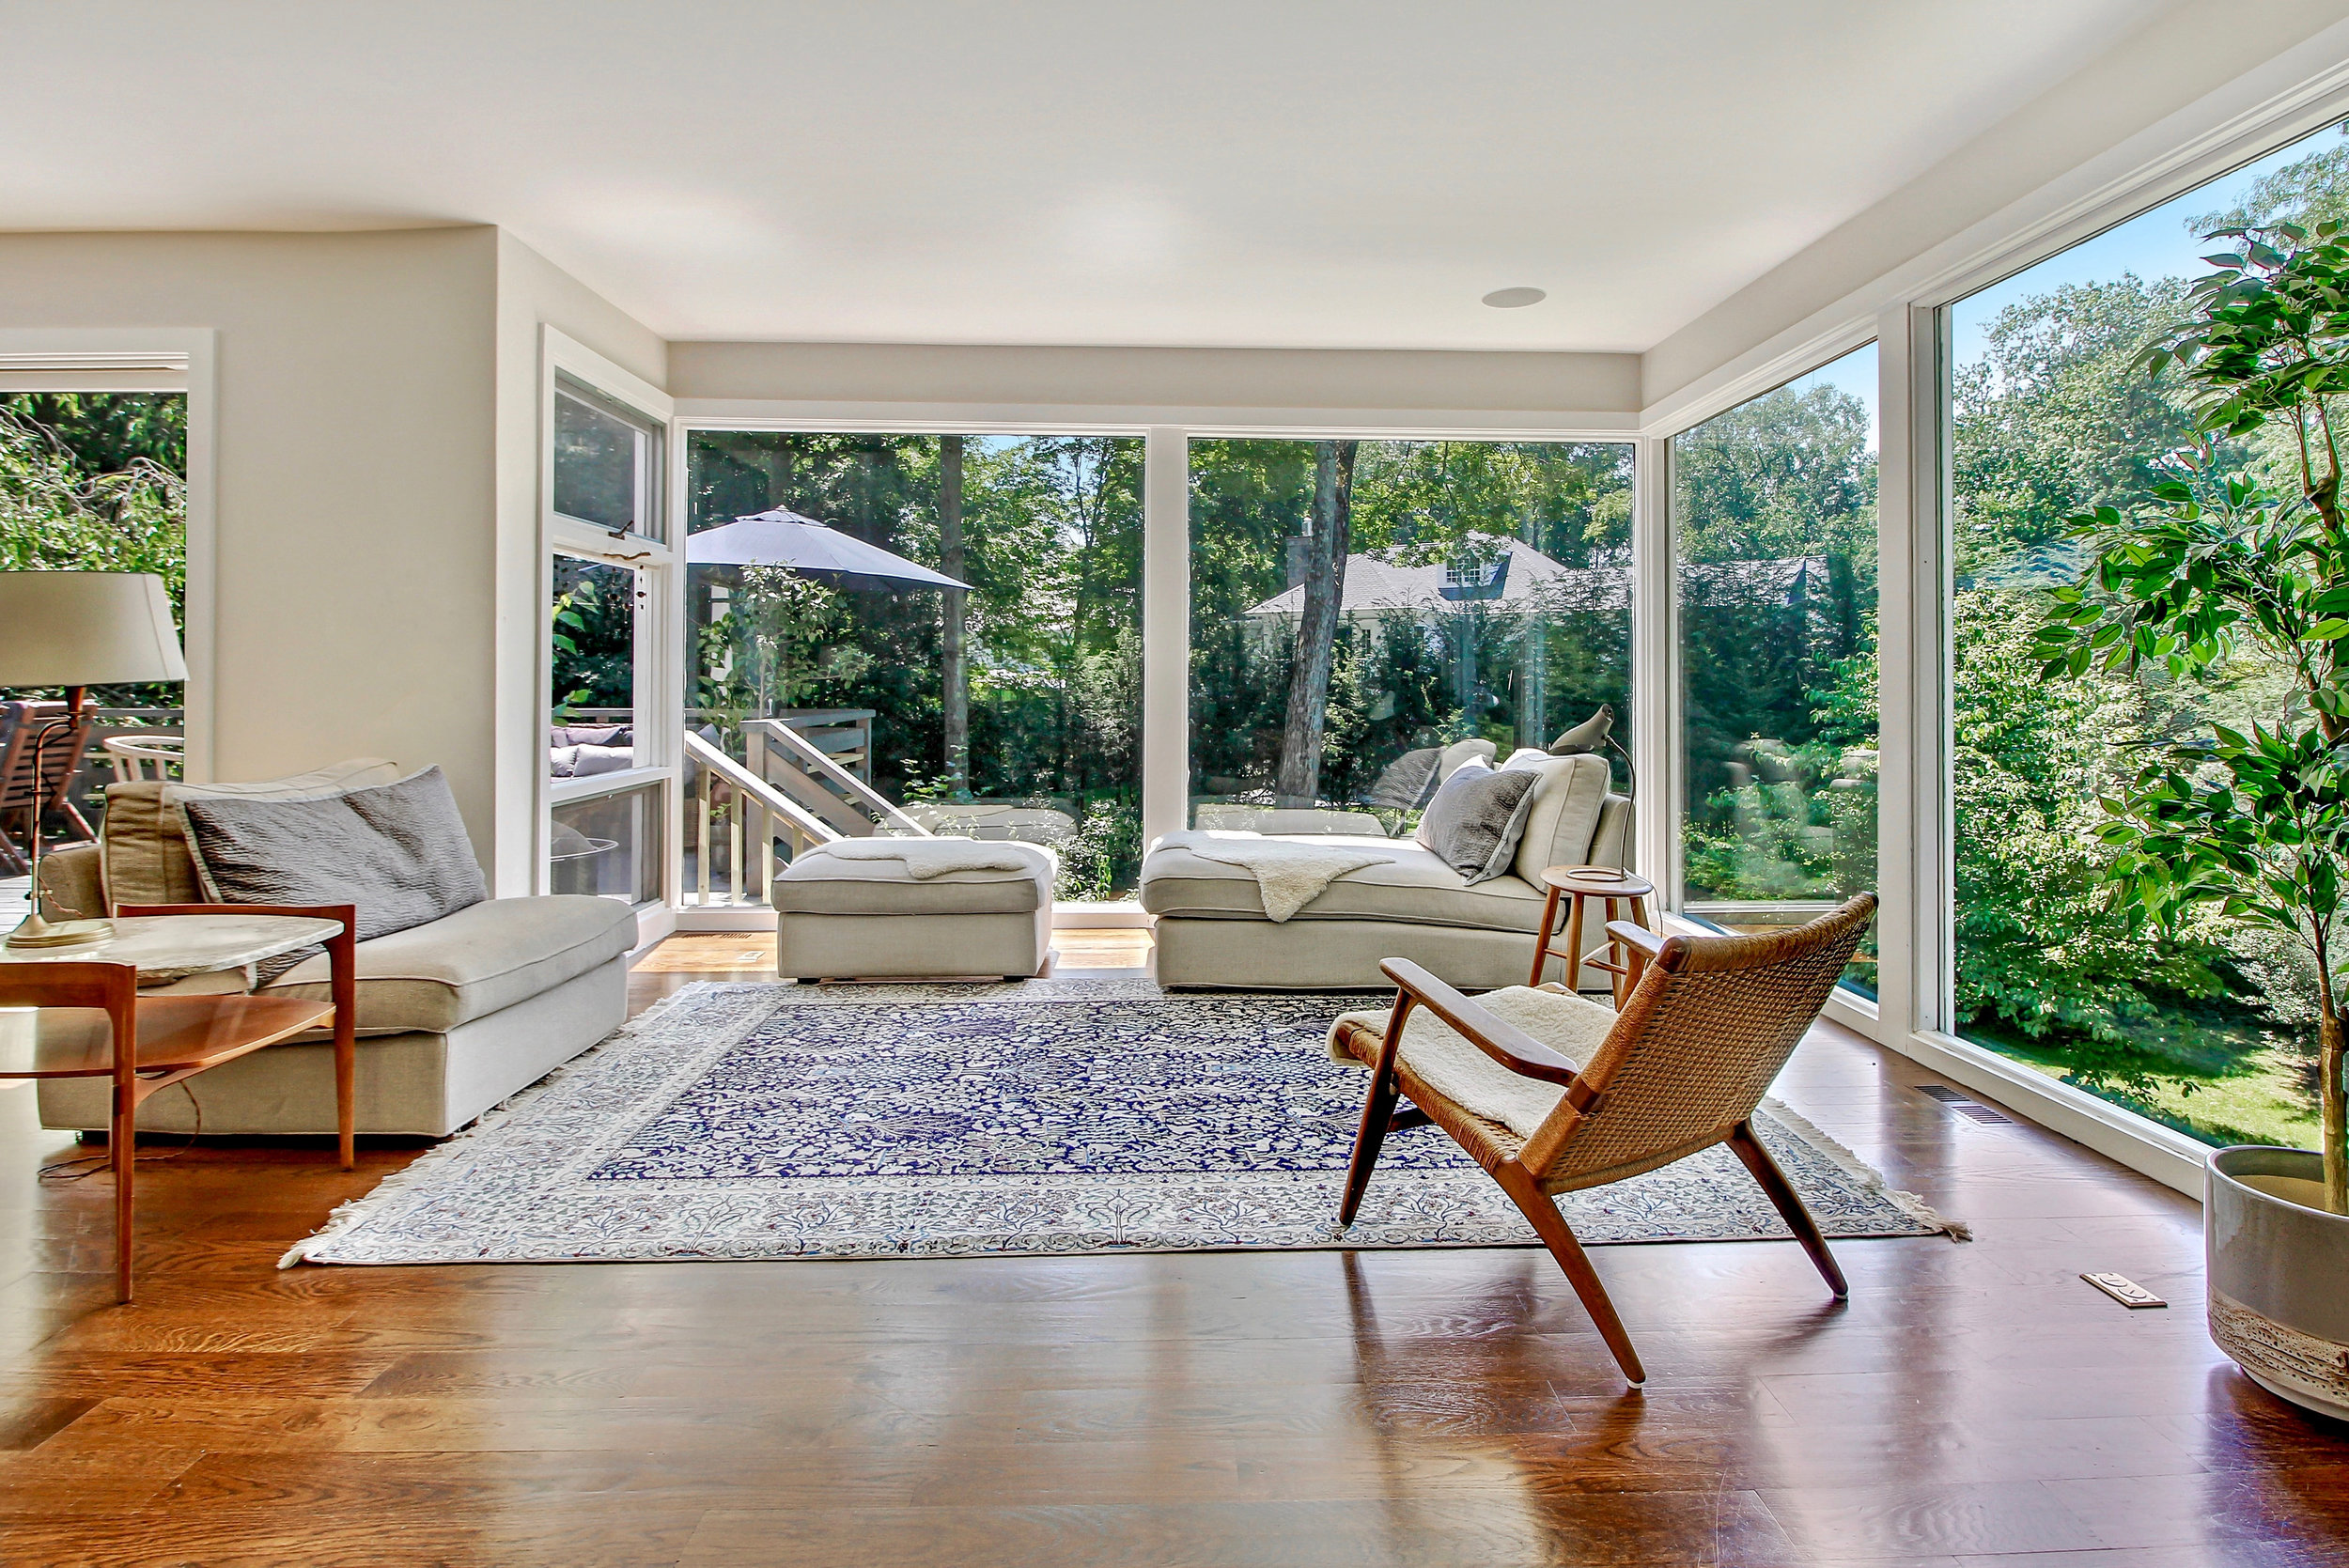 SOLD  6 Horseguard Lane Scarsdale, NY. Represented the Seller in their 5th Successful Transaction with Angela Retelny.  (2018)